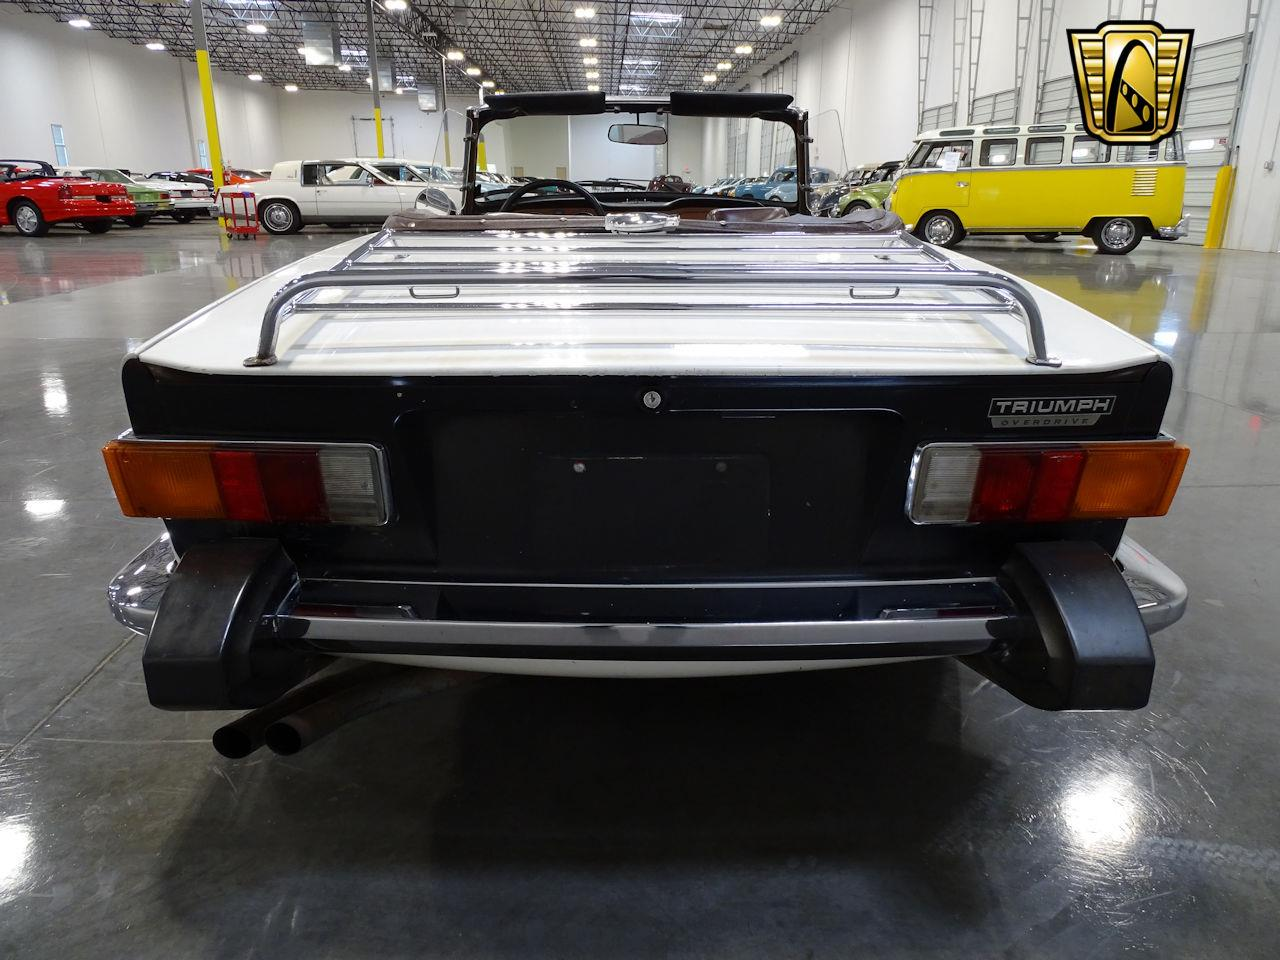 Large Picture of 1974 Triumph TR6 - $18,995.00 Offered by Gateway Classic Cars - Scottsdale - MCYM